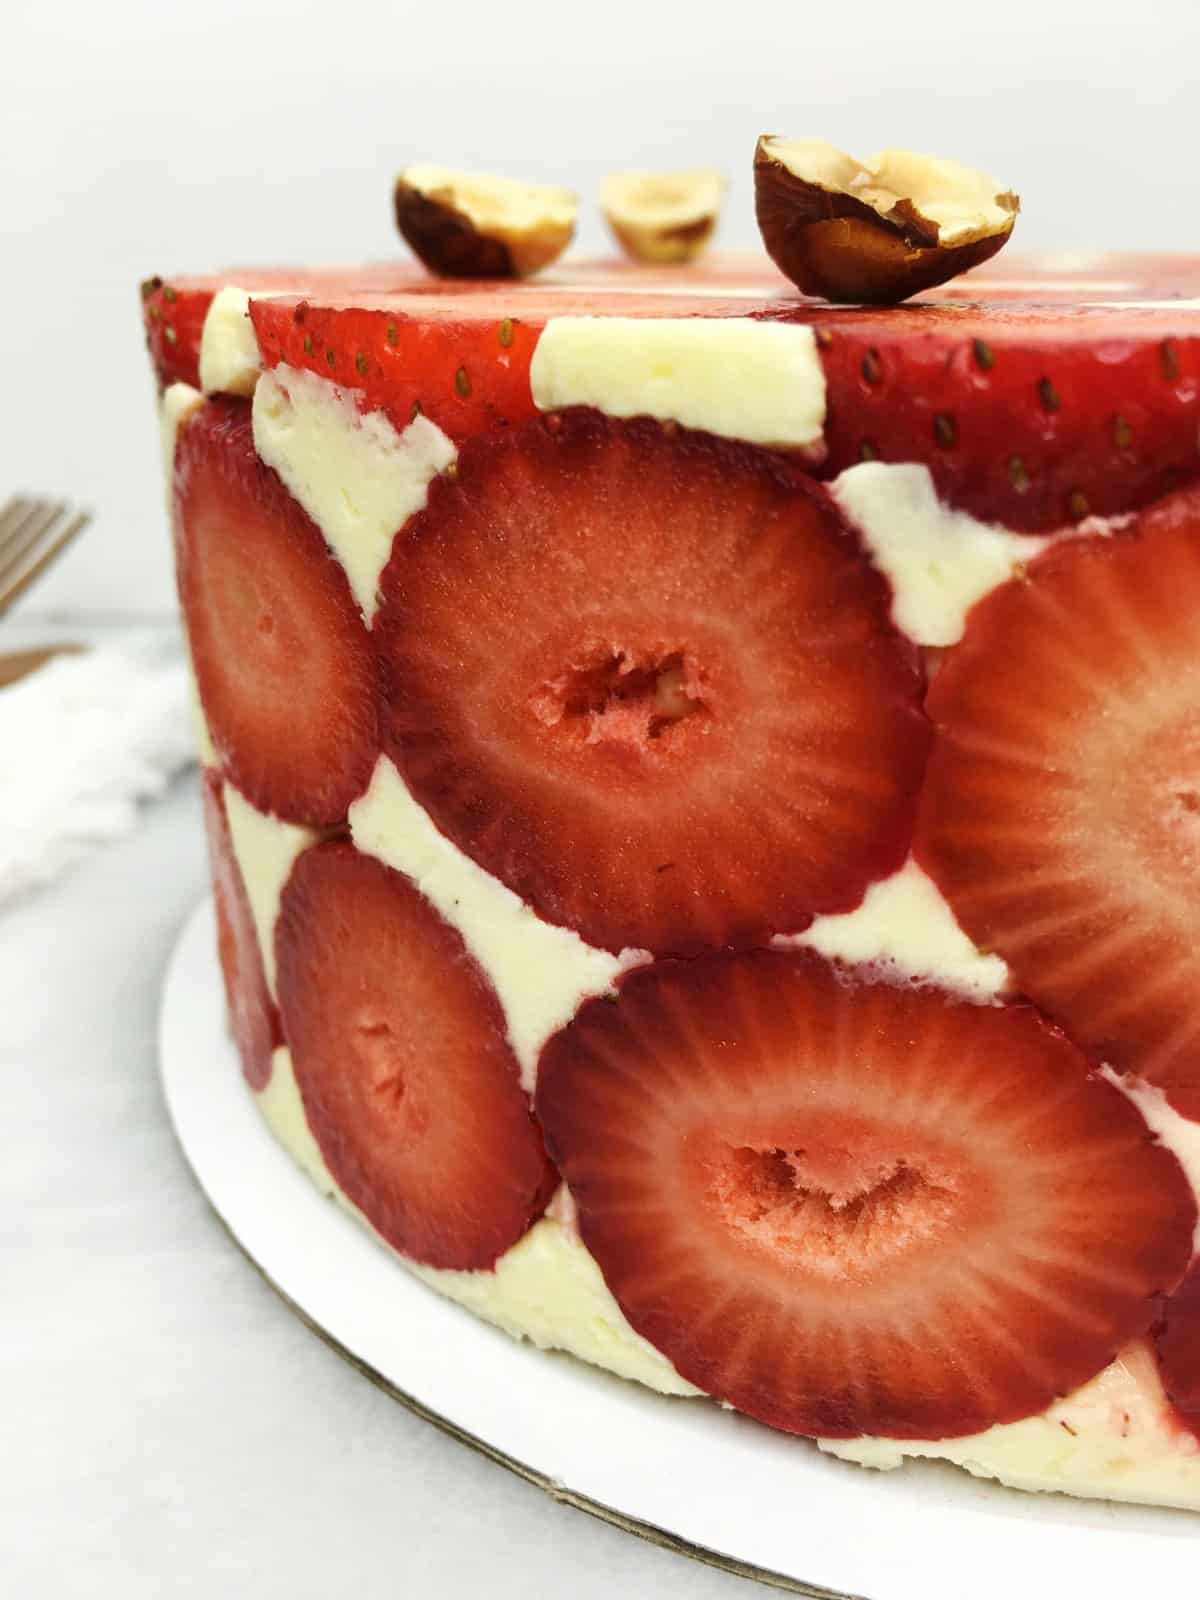 Fraisier cake garnished with fresh strawberries and halves of hazelnuts